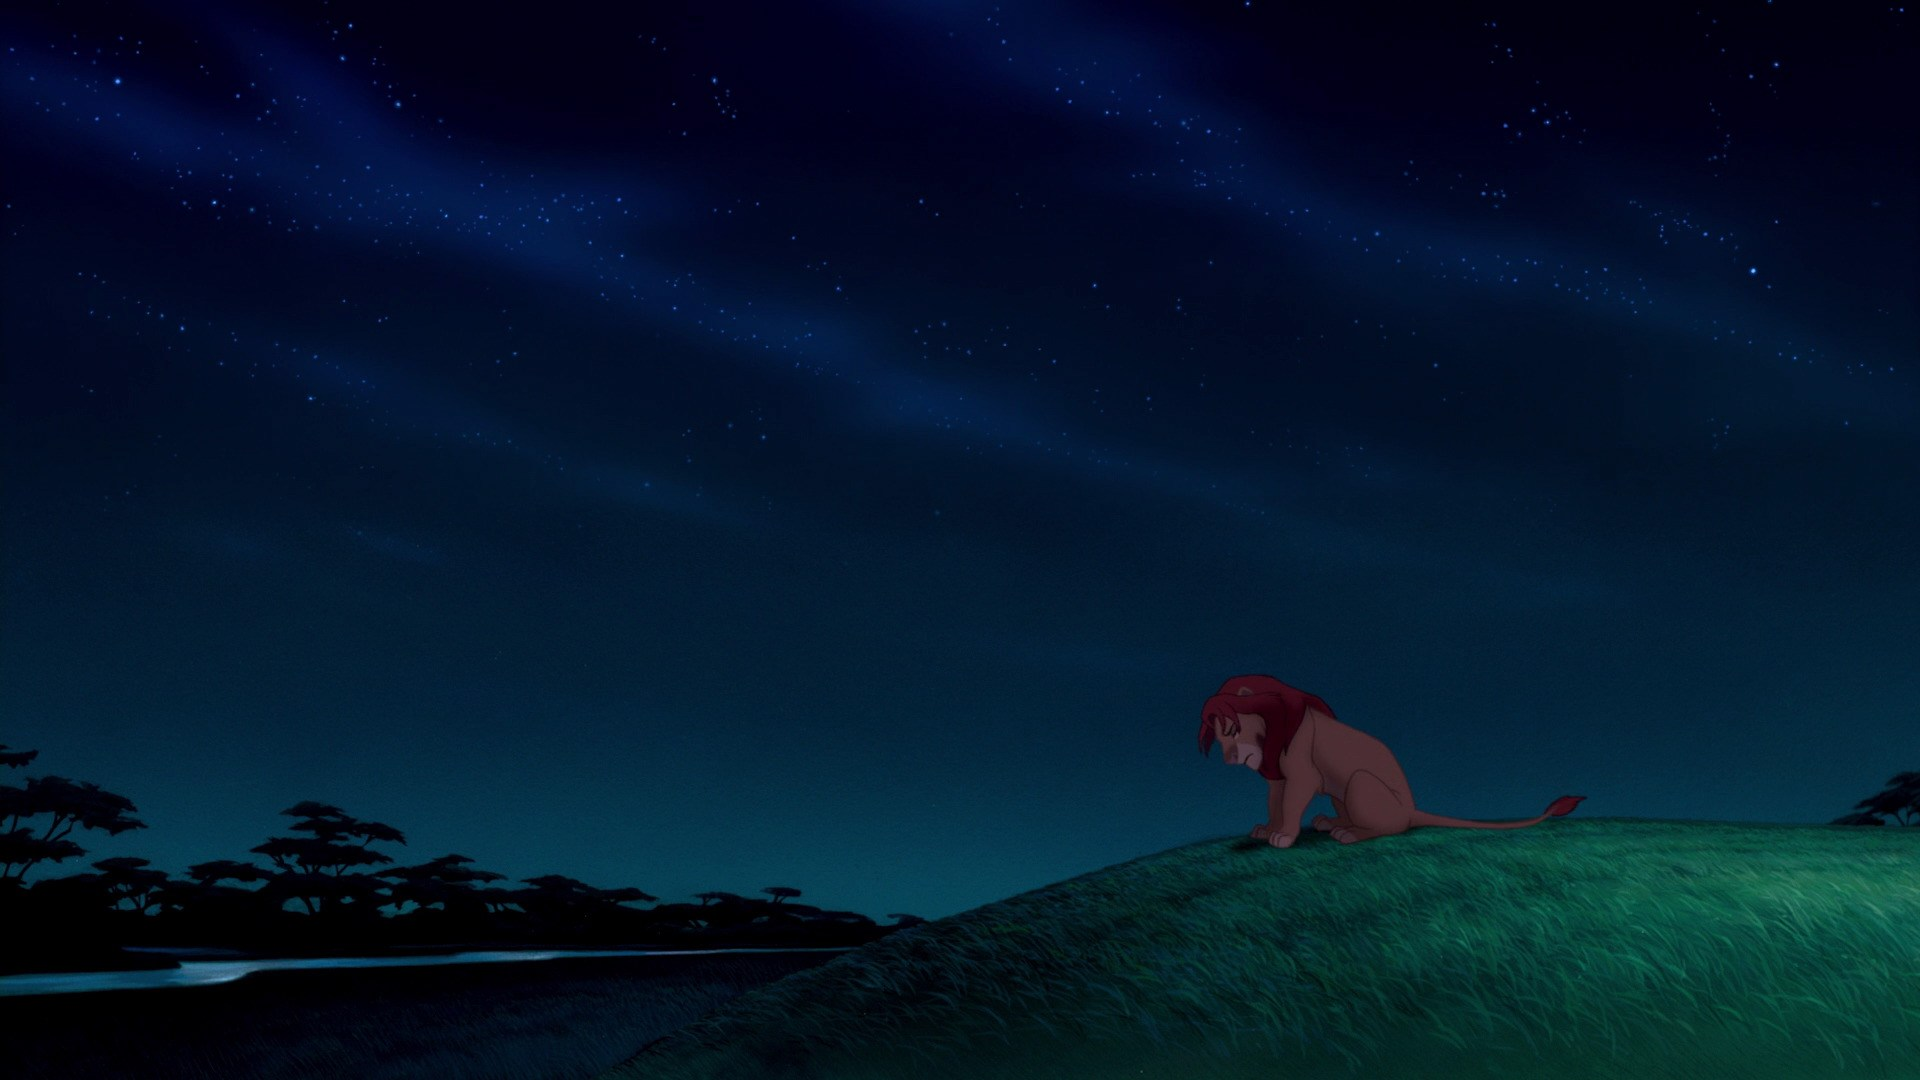 004lion-king-disneyscreencaps.com-7461.jpg